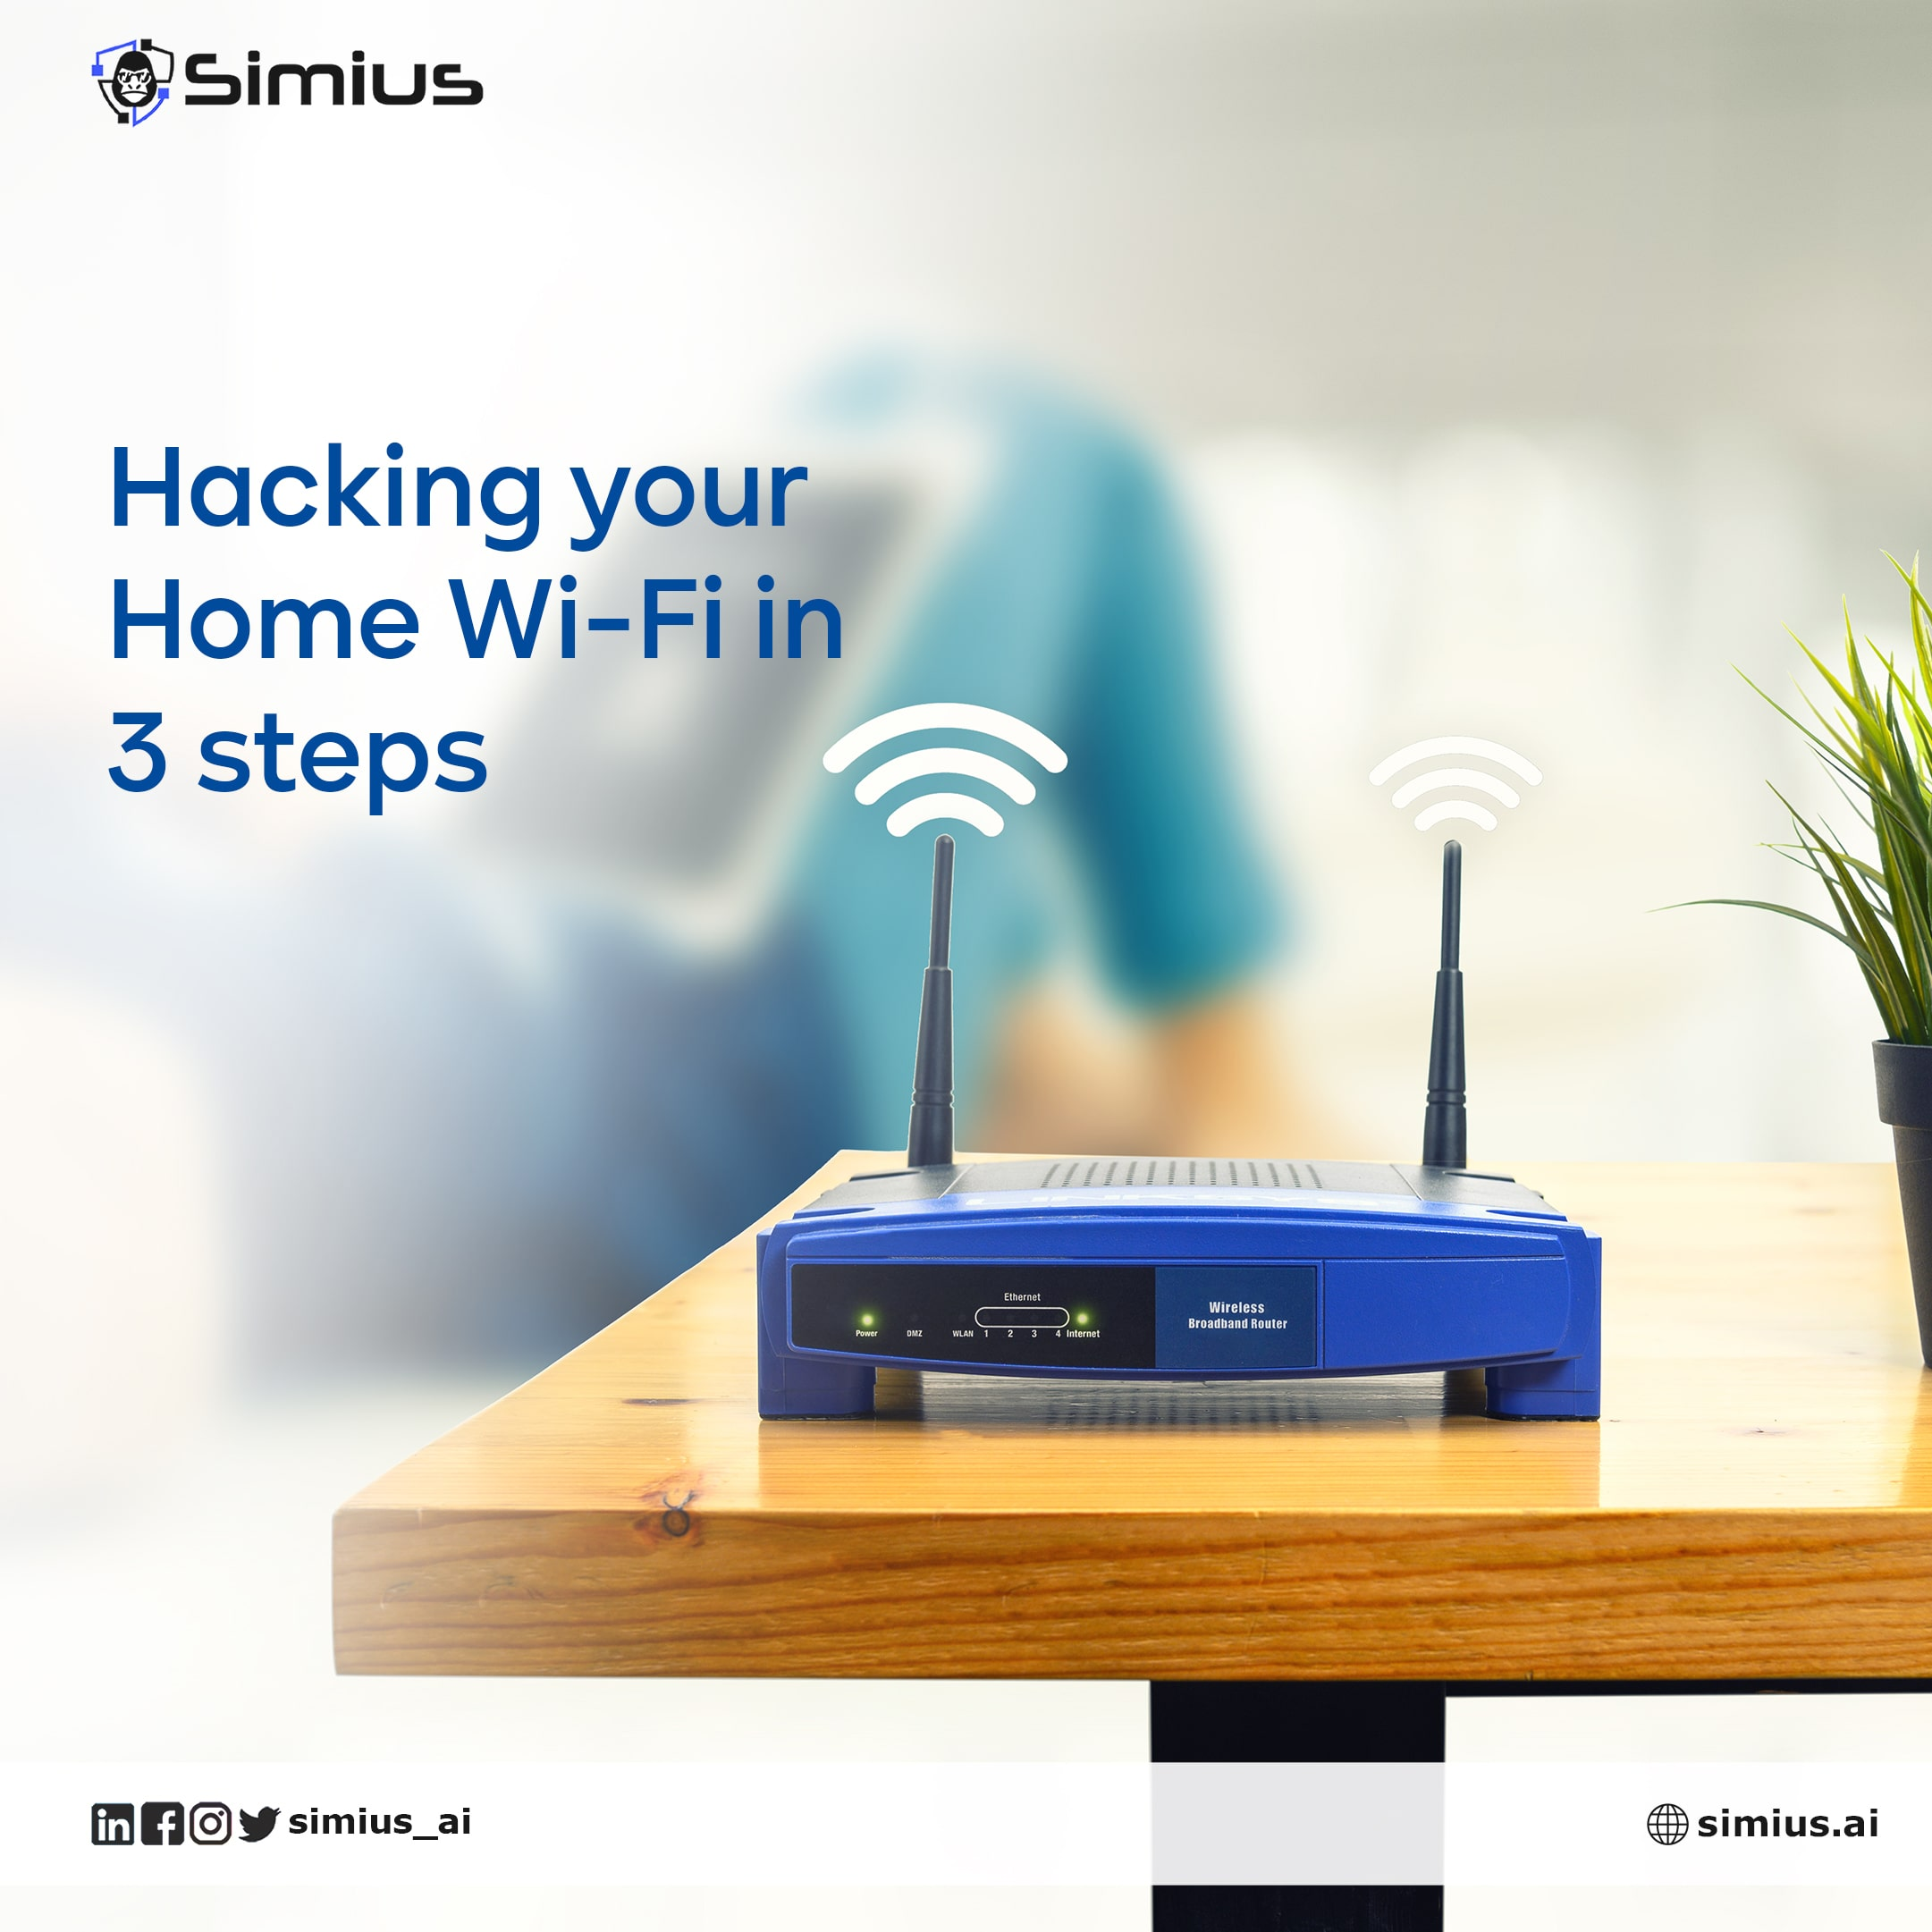 Hacking your Home Wi-Fi in 3 steps